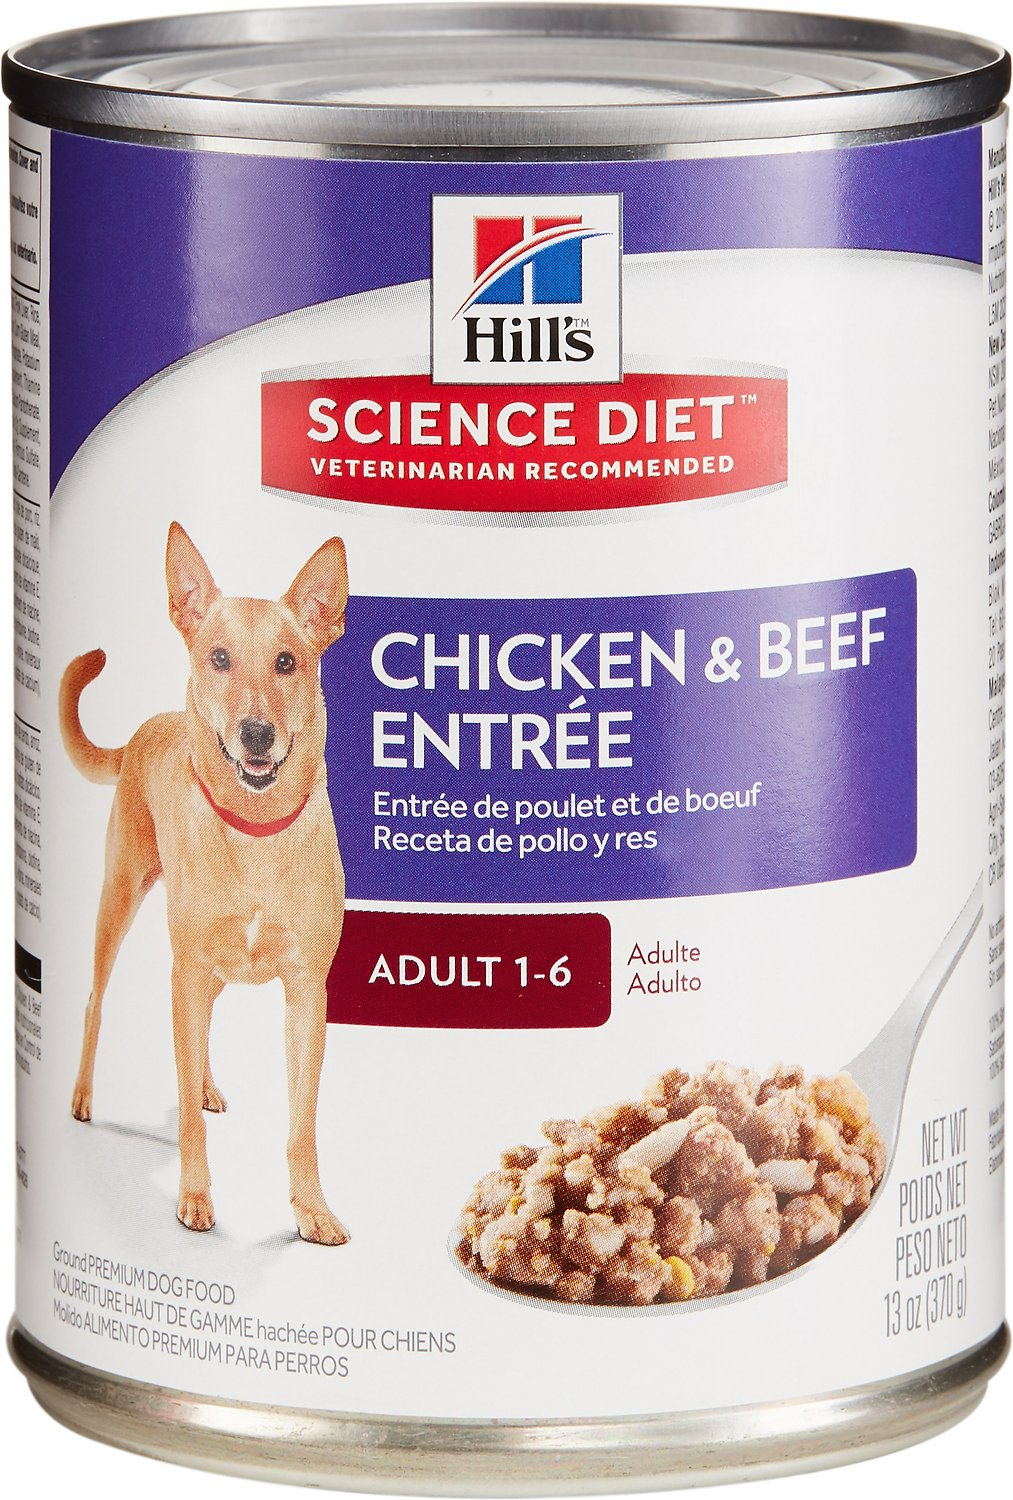 Hill's Science Diet Adult Beef & Chicken Entree Canned Dog Food, 13-oz